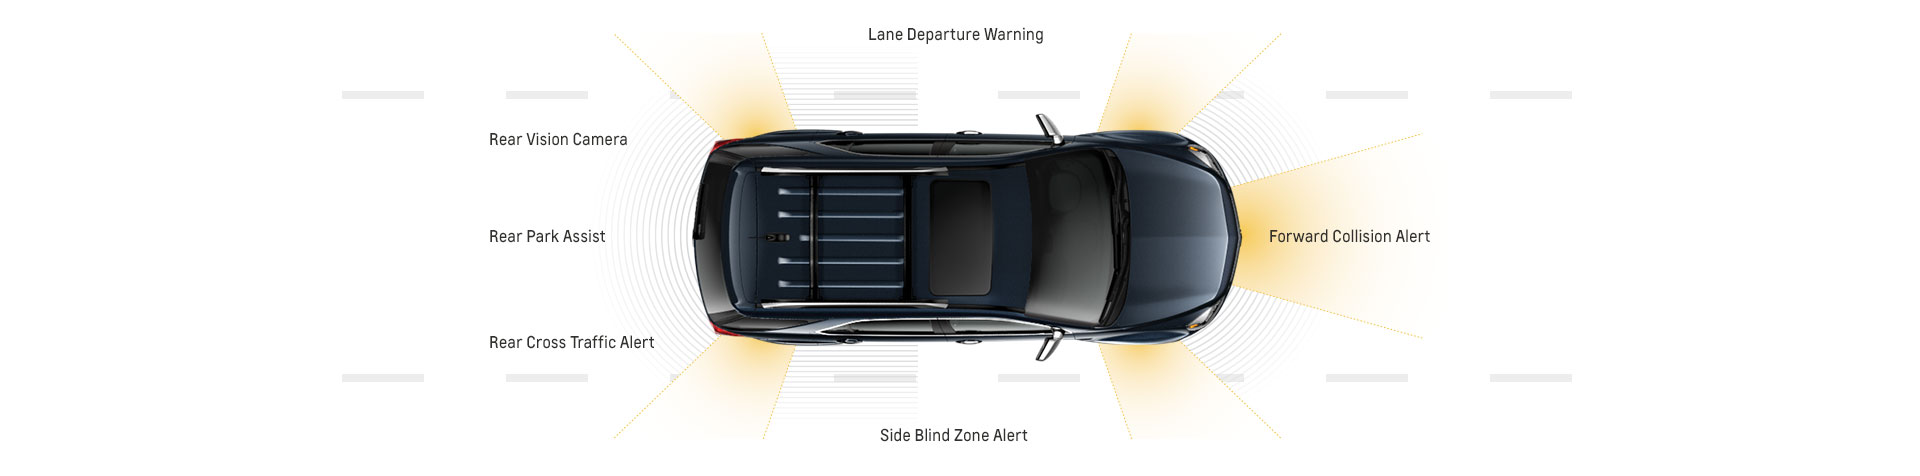 A top-down view of a dark blue 2017 Chevy Equinox with simulated safety features on all sides.